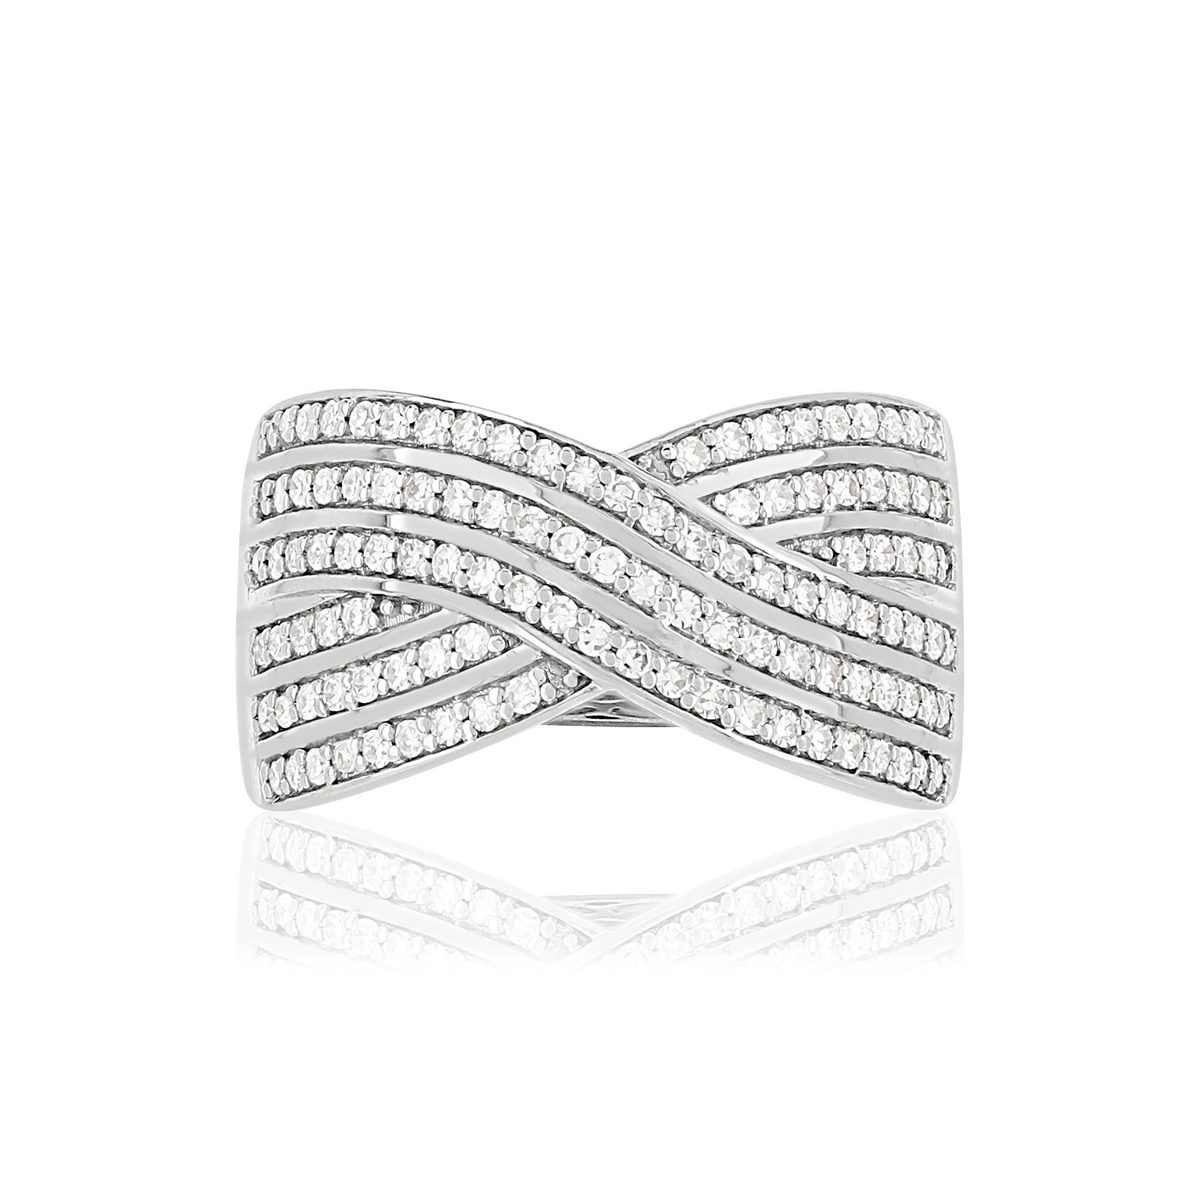 Bague MATY Or 750 blanc diamants - vue V3